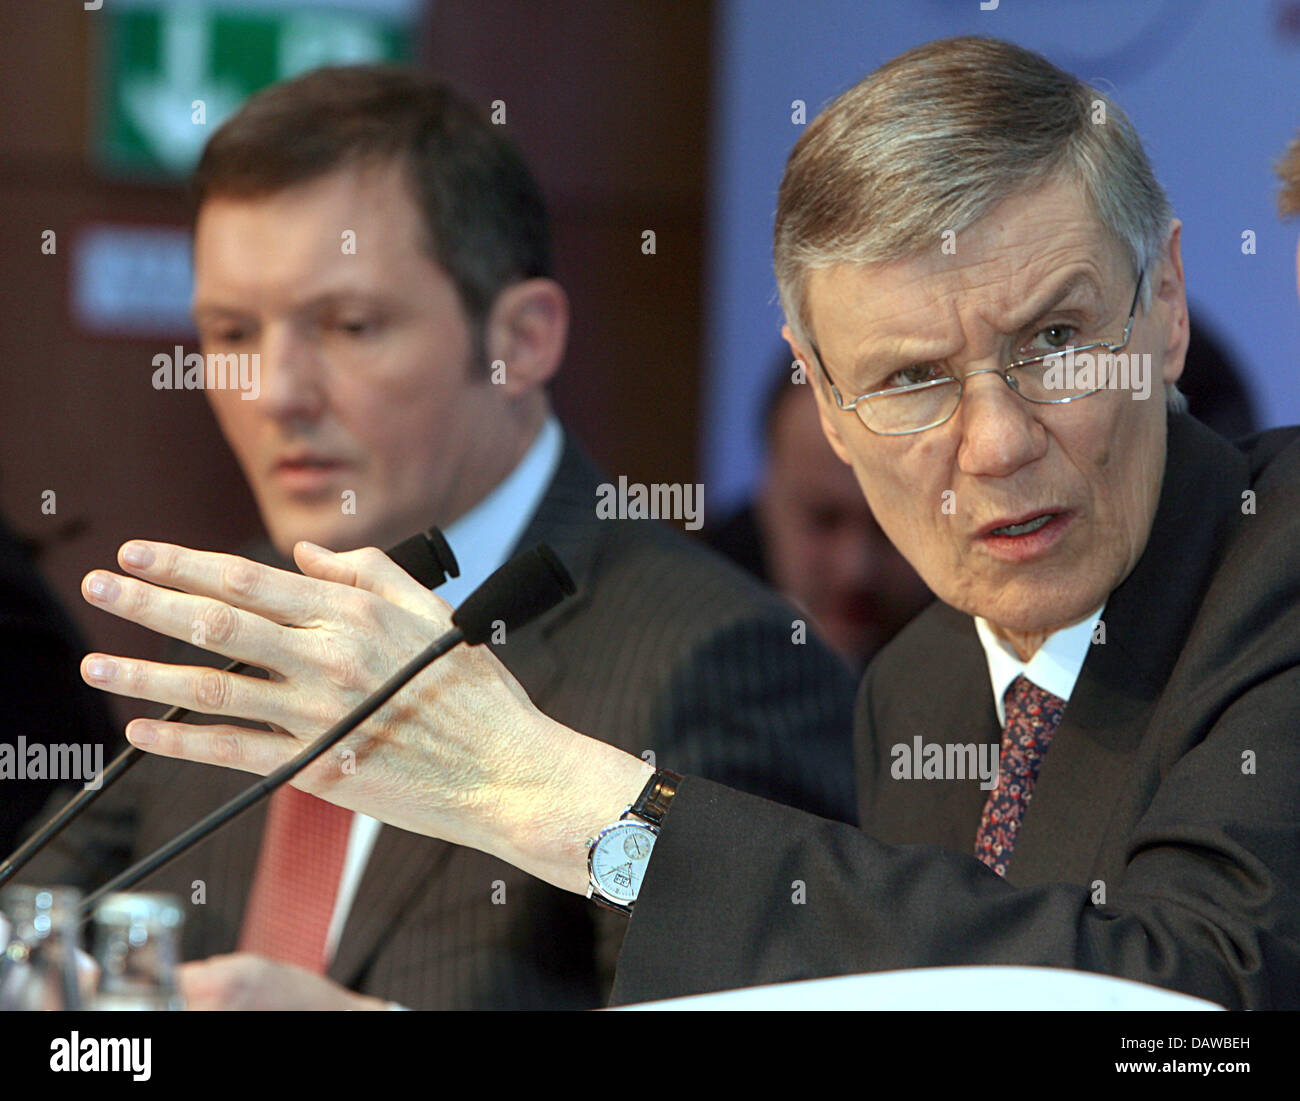 Wolfgang Sprissler (R), CEO of one of Germany's major financial institutions HypoVereinsbank (HVB), and CFO - Stock Image